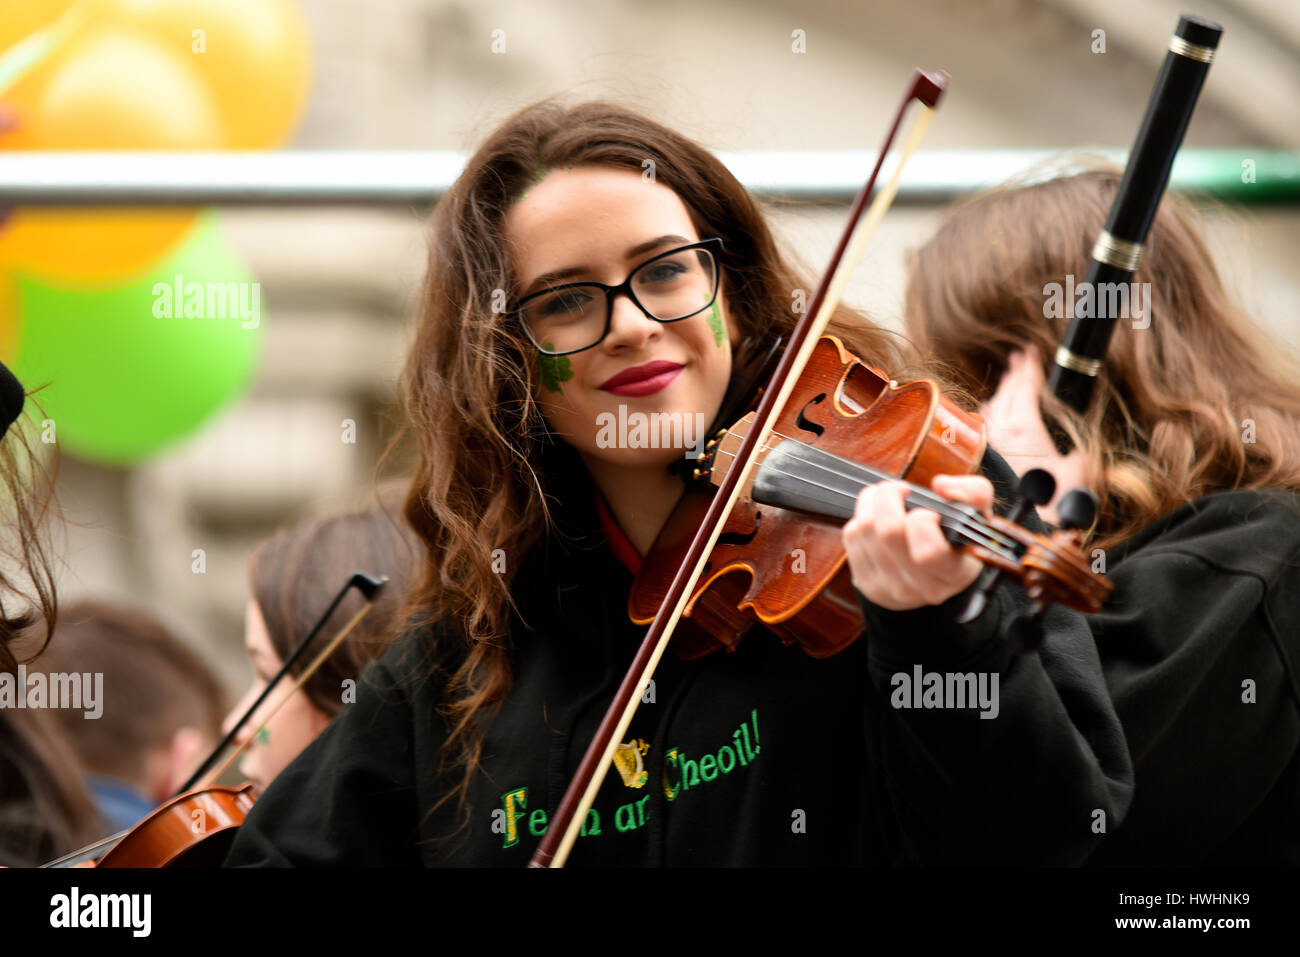 violinist-of-the-feith-an-cheoil-school-of-music-at-the-2017-st-patricks-HWHNK9.jpg